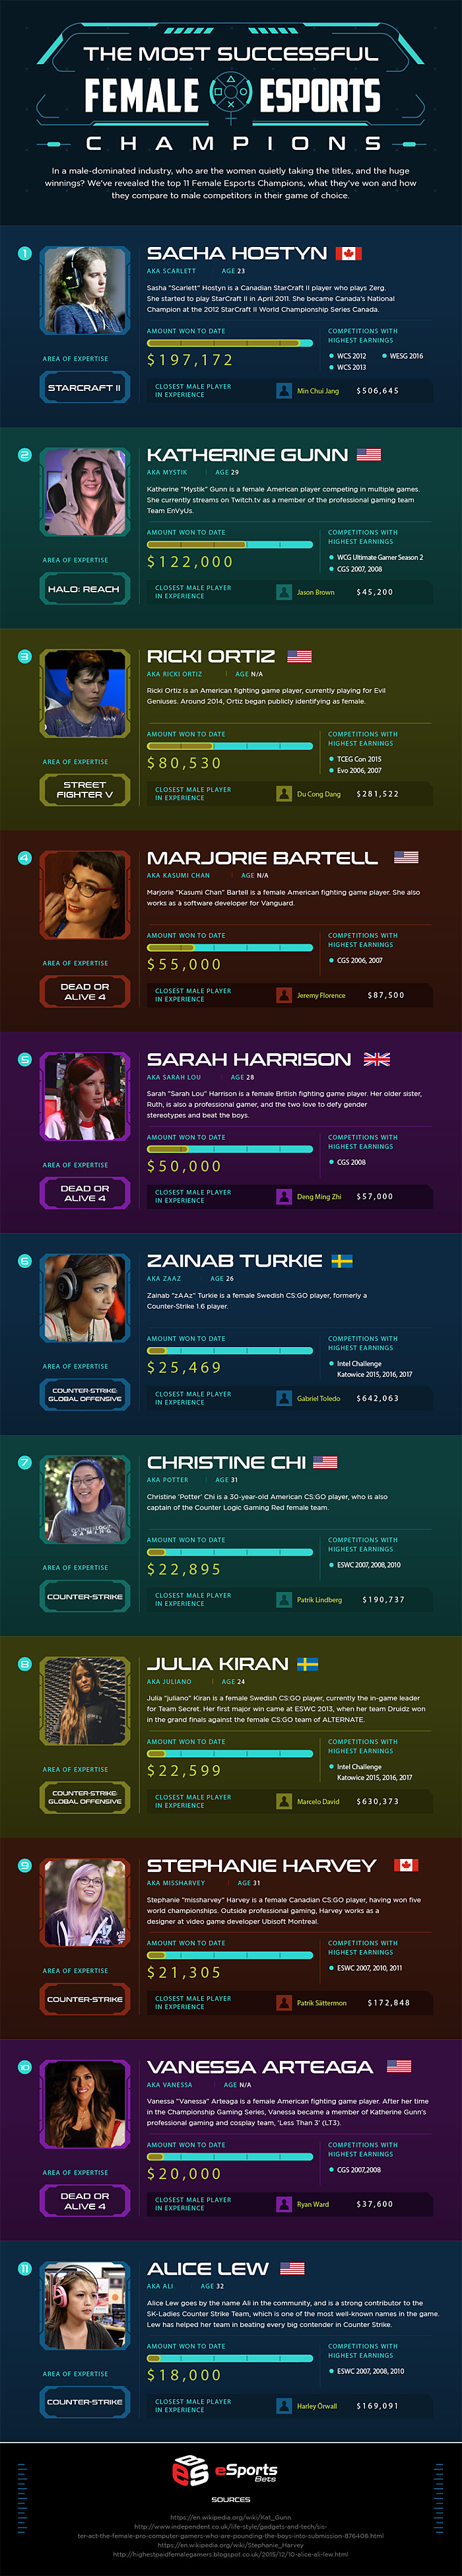 The Most Successful Female eSports Champions